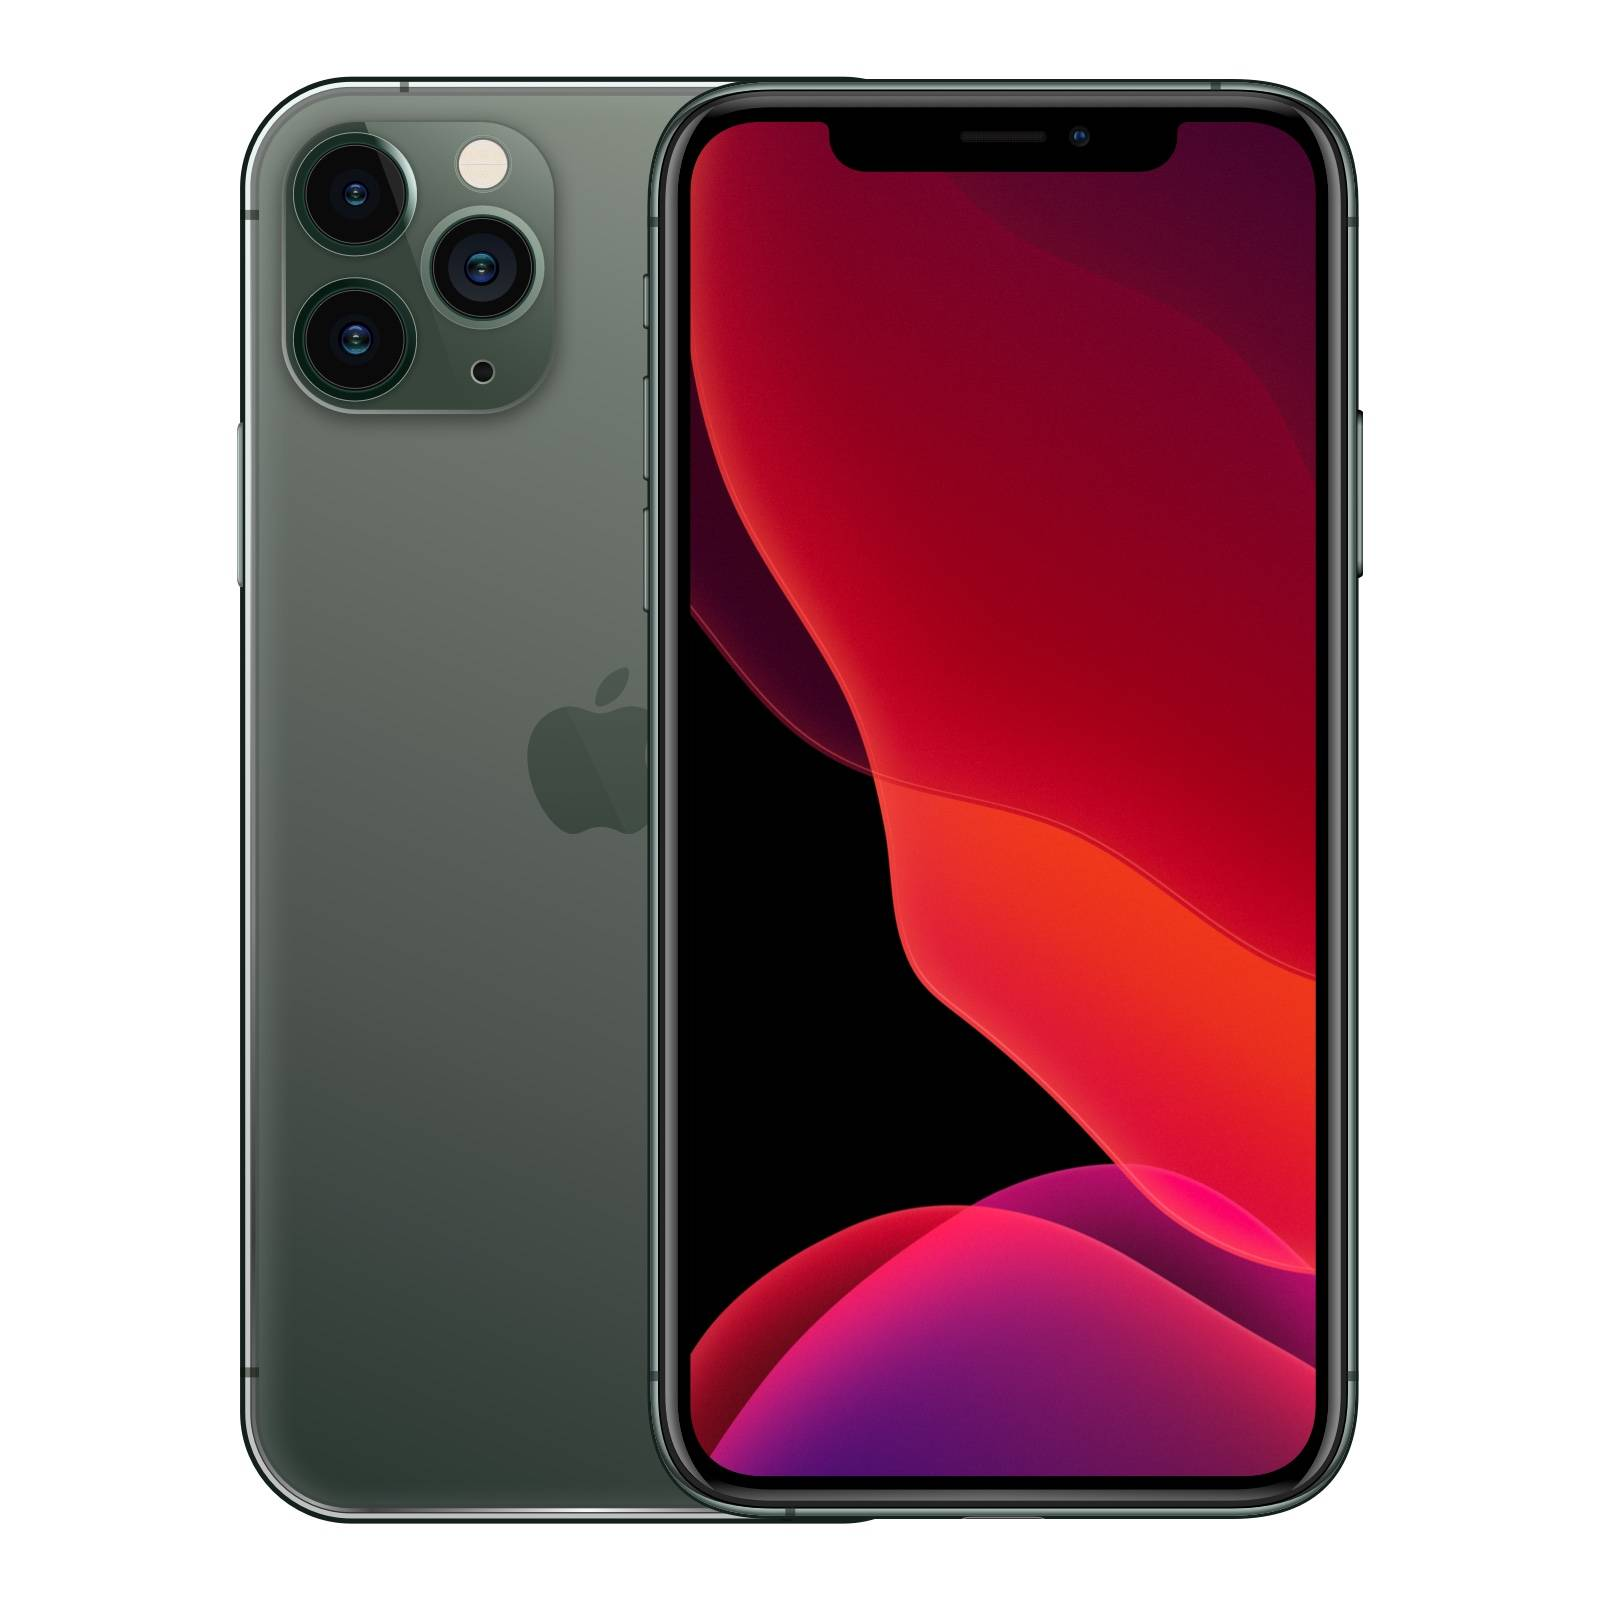 Apple iPhone 11 Pro 512GB Verde Notte